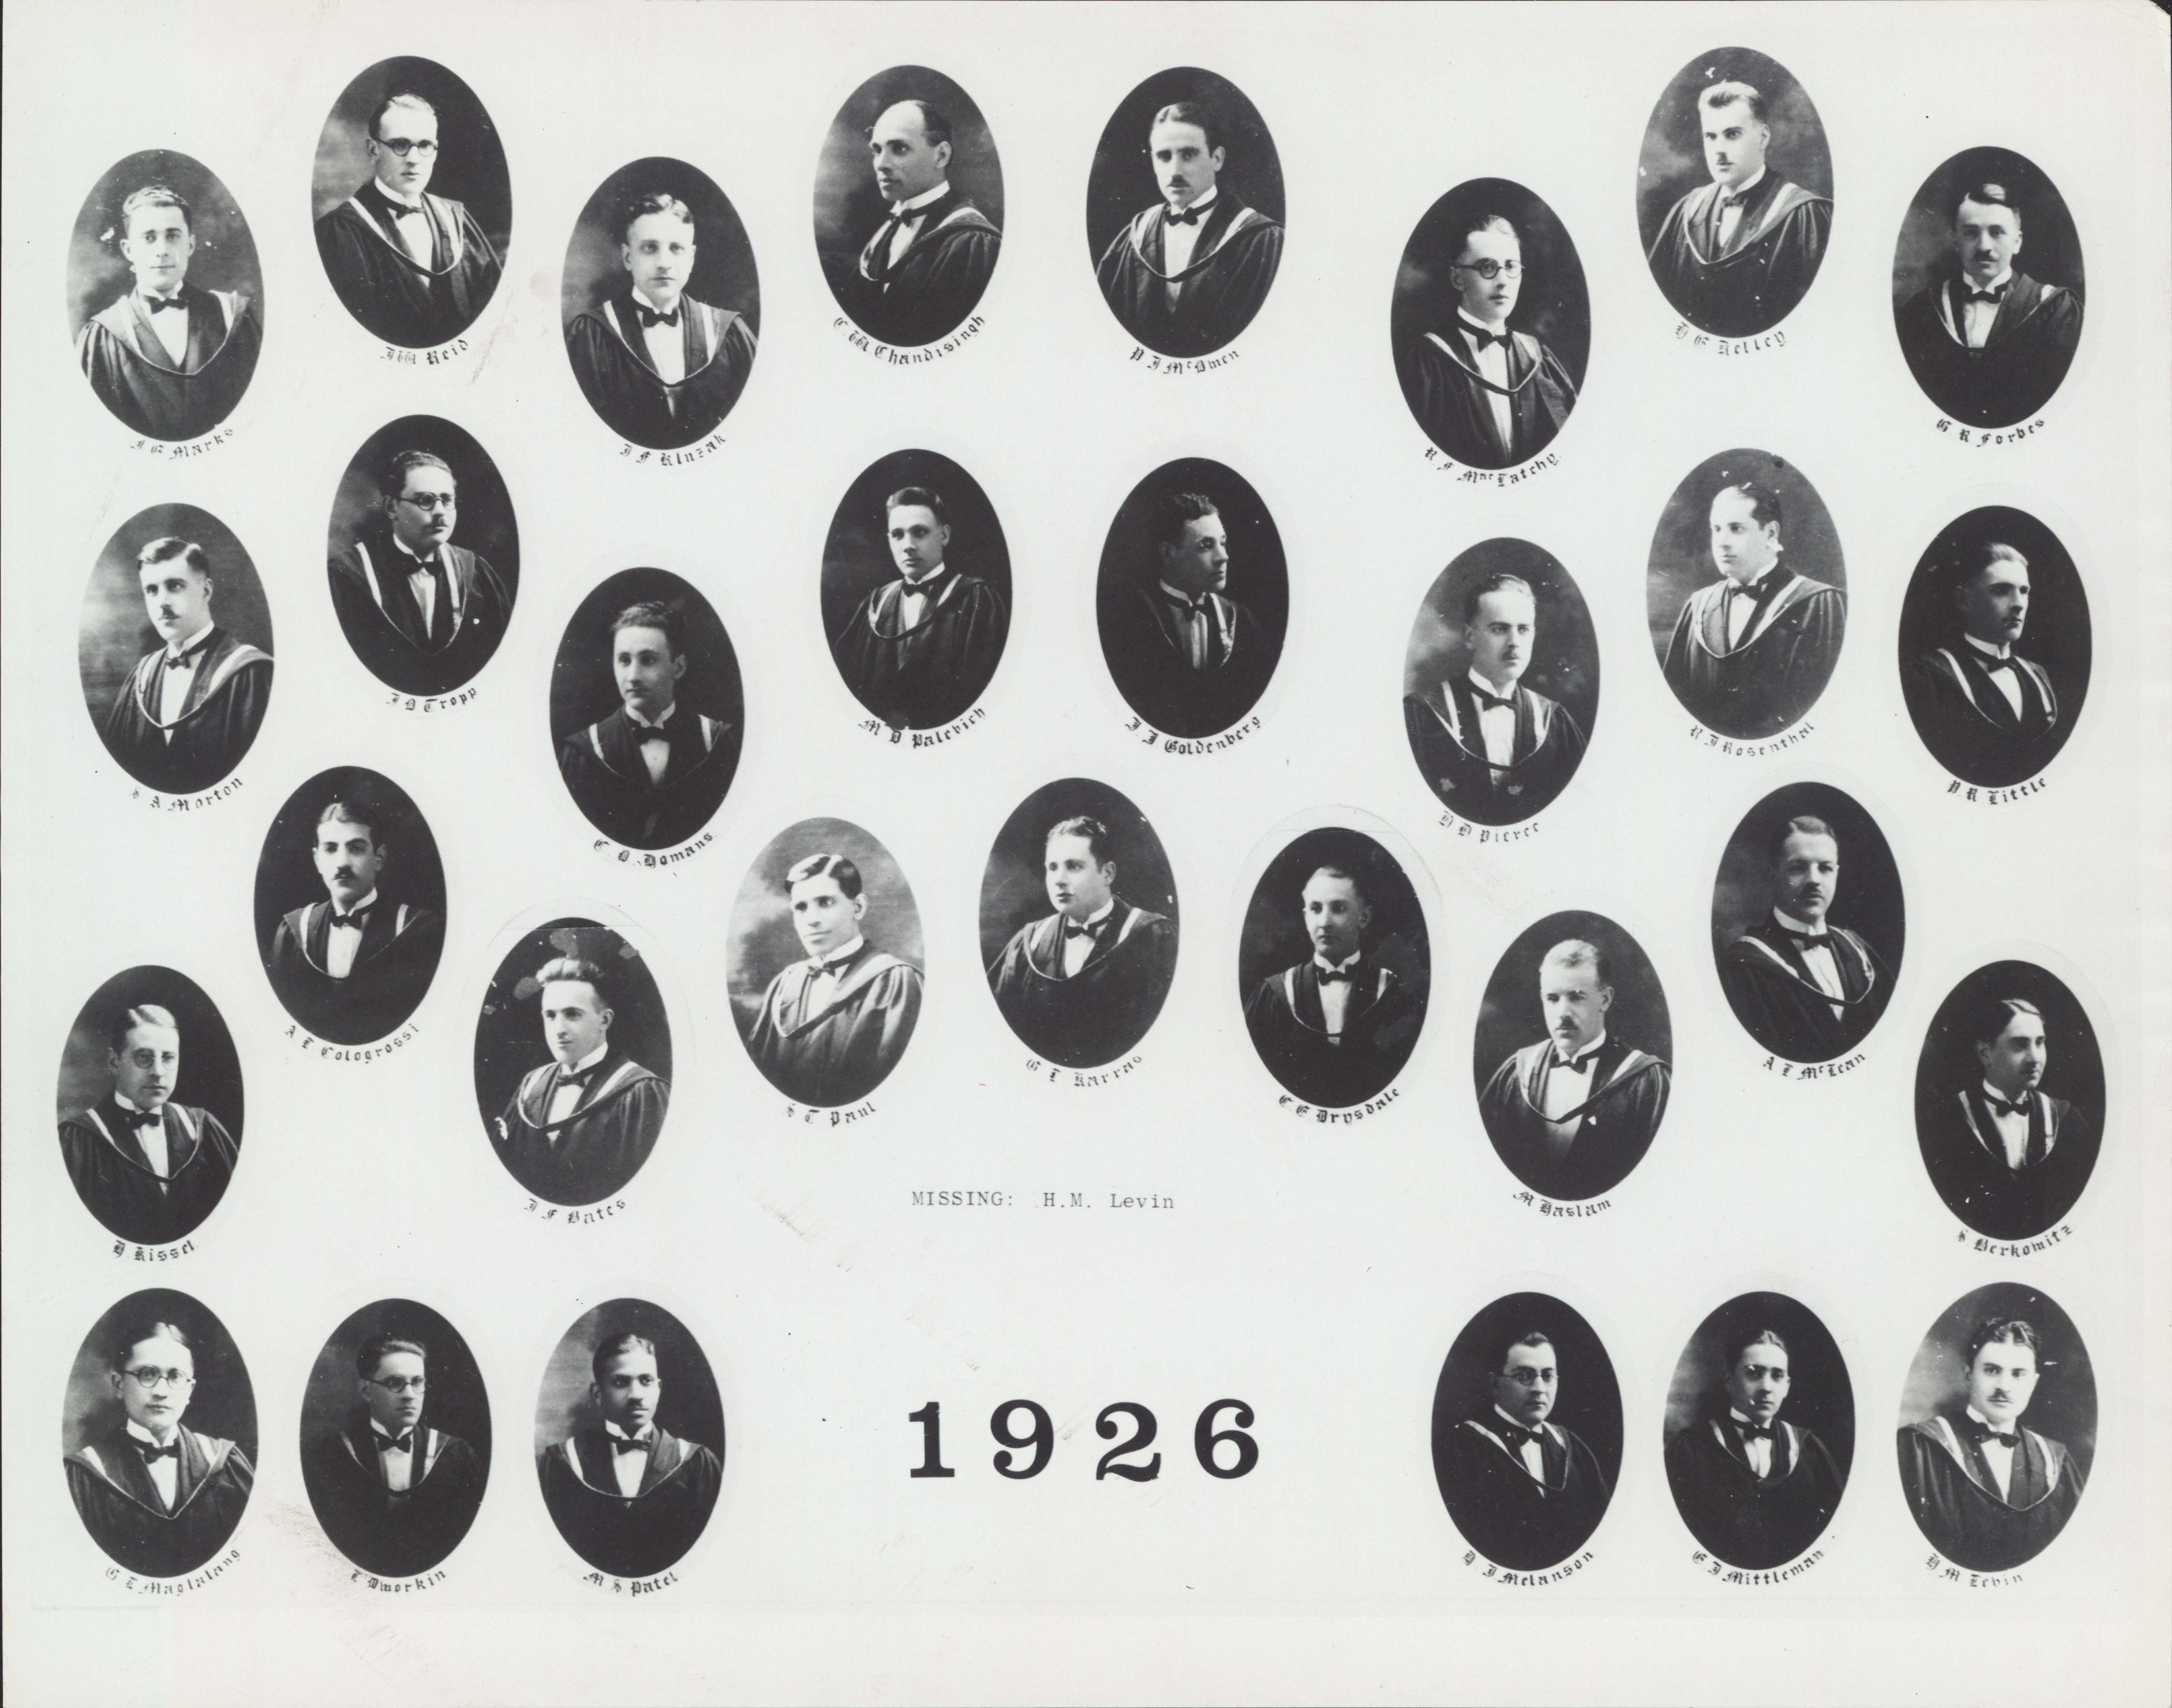 Faculty of Medicine Class Photograph - 1926 - Archives Catalogue